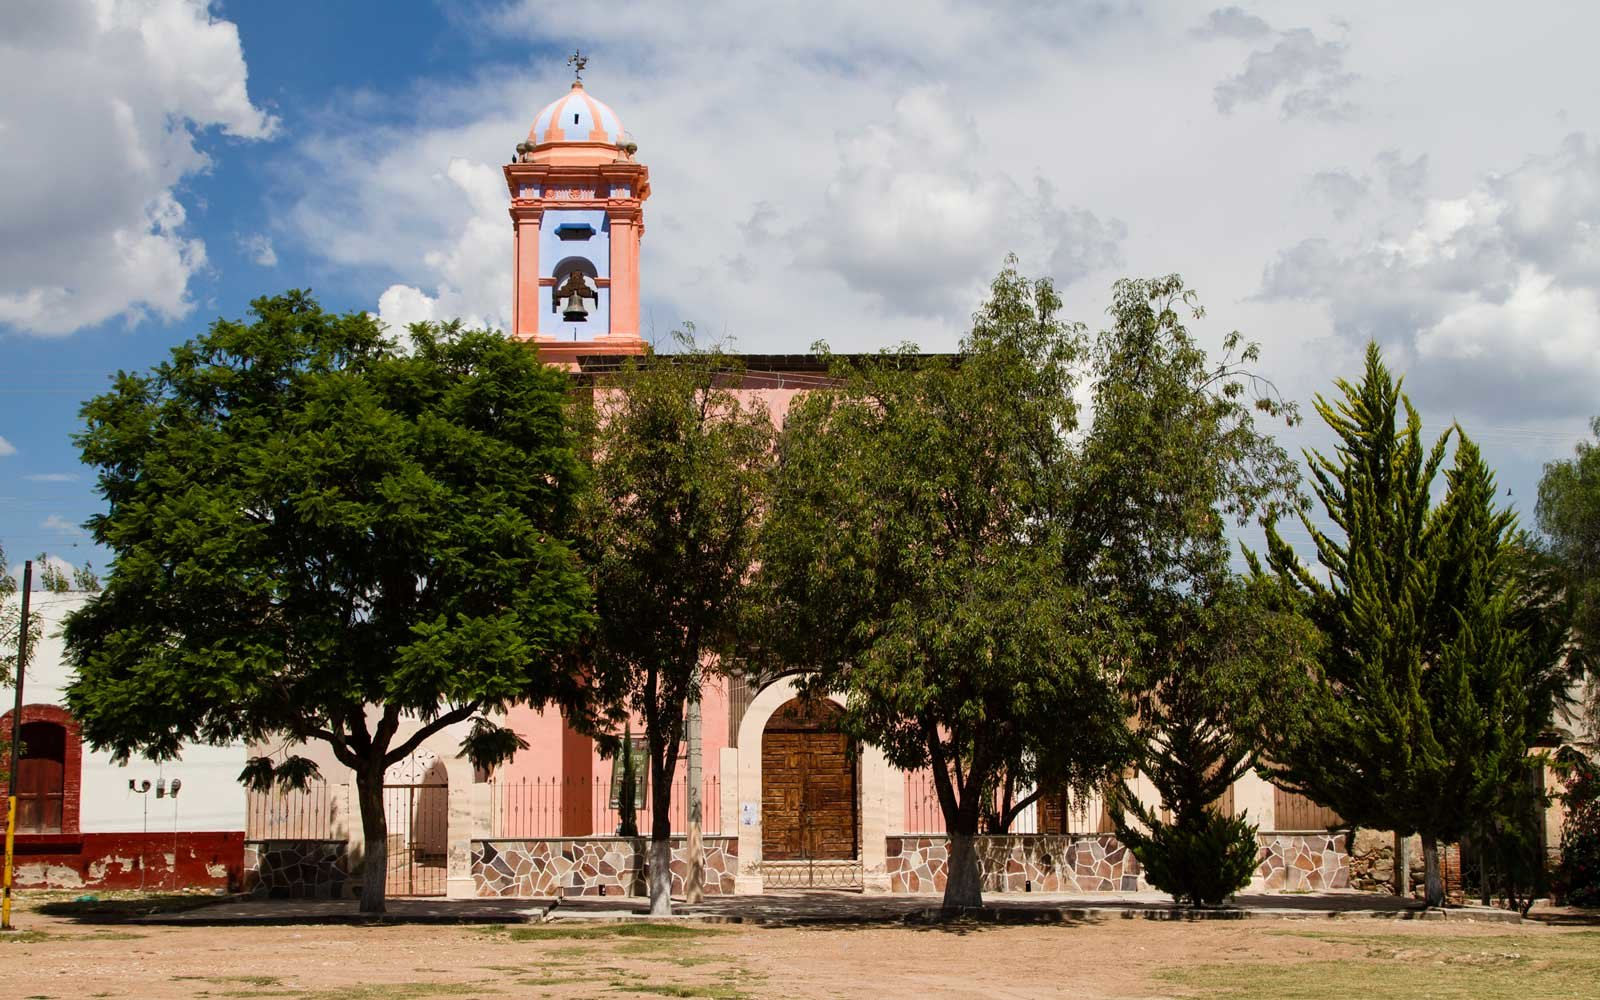 Guanajuato, Mexico: View of the church in Trancas from the front door of Hacienda las Trancas